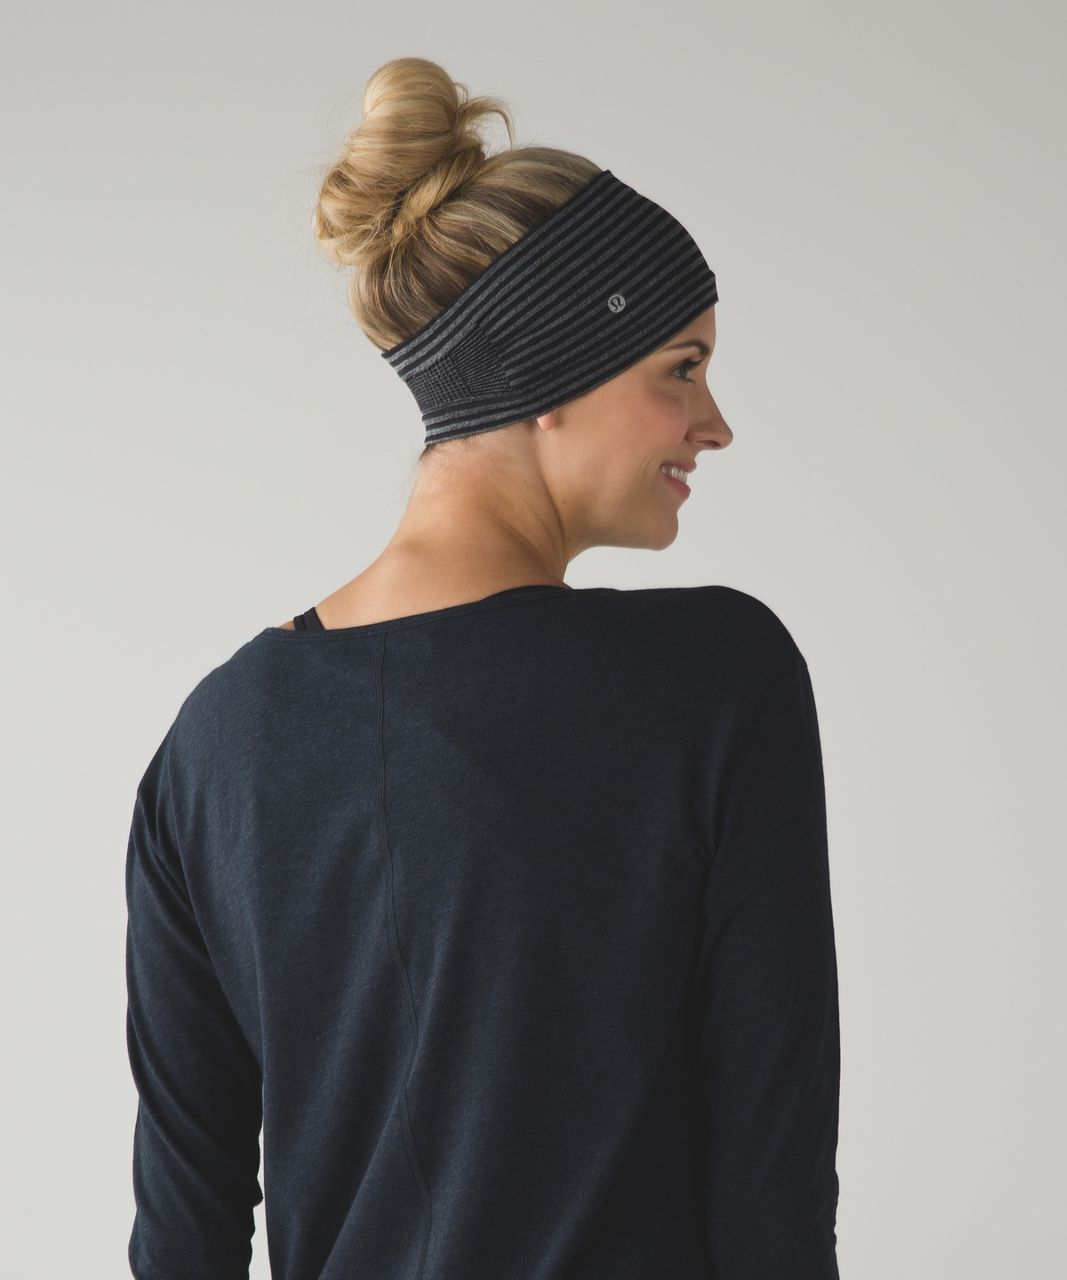 Lululemon Bangs Back Headwrap - Heathered Black (Striped)